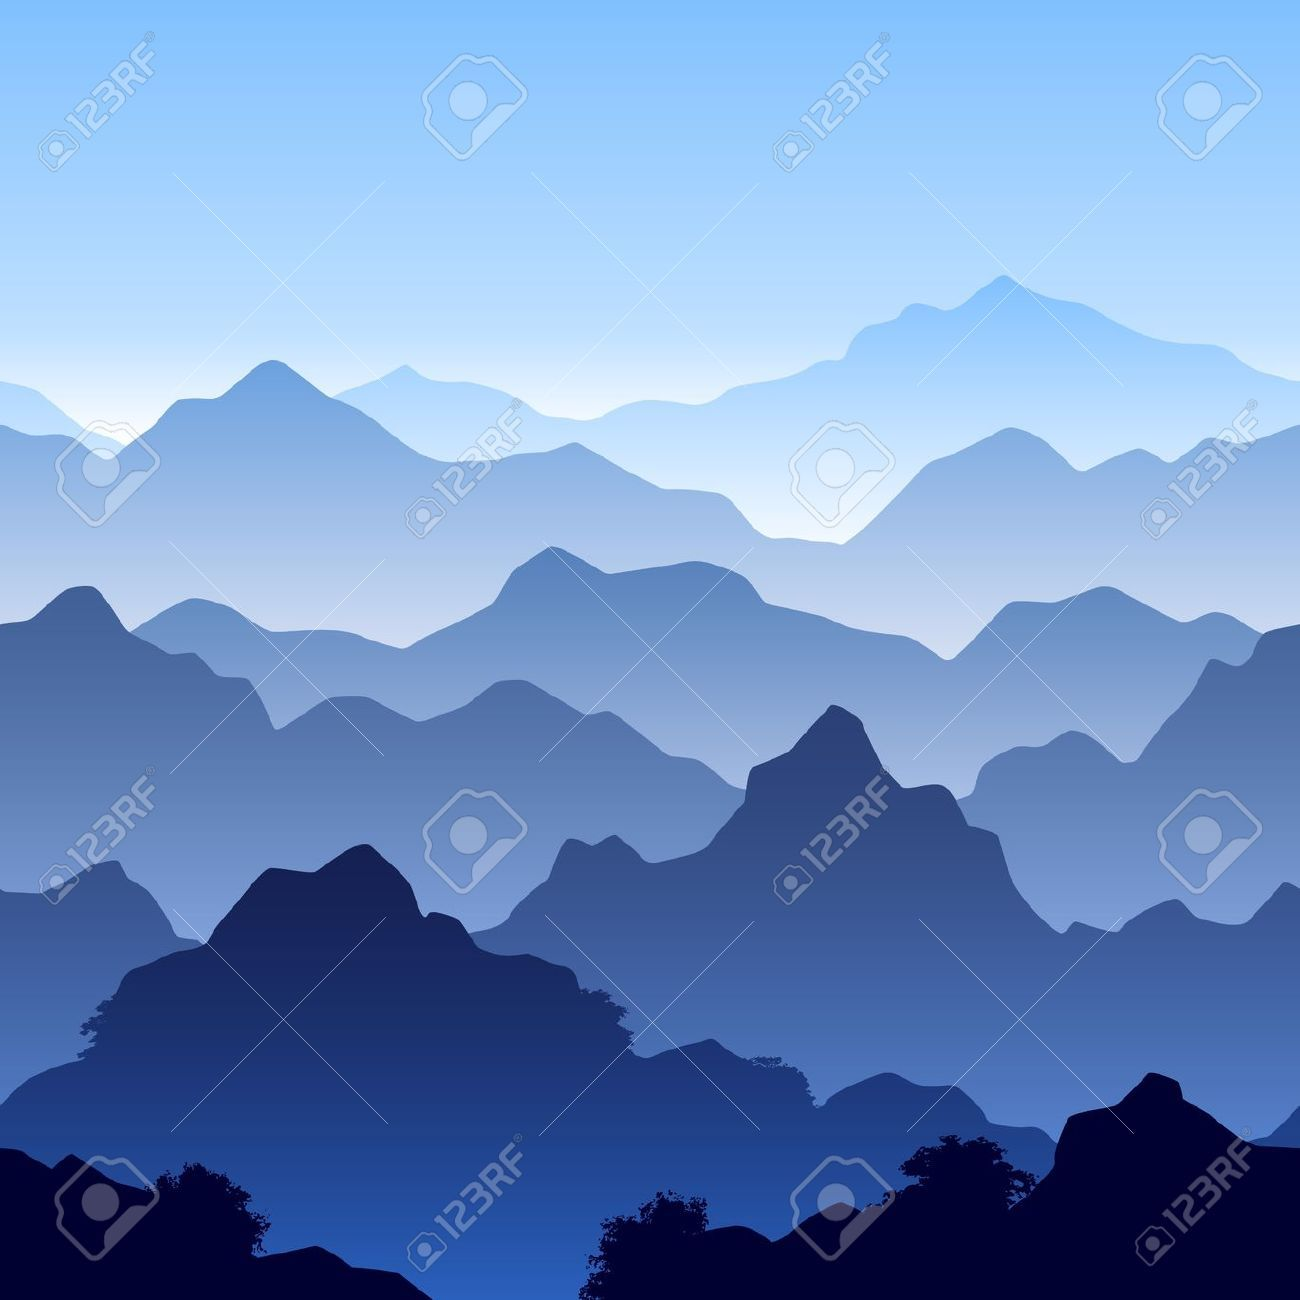 Rocky Mountain Cliparts Stock Vector And Royalty Free Rocky Mountain Illustrations Mountain Landscape Mountain Illustration Landscape Illustration